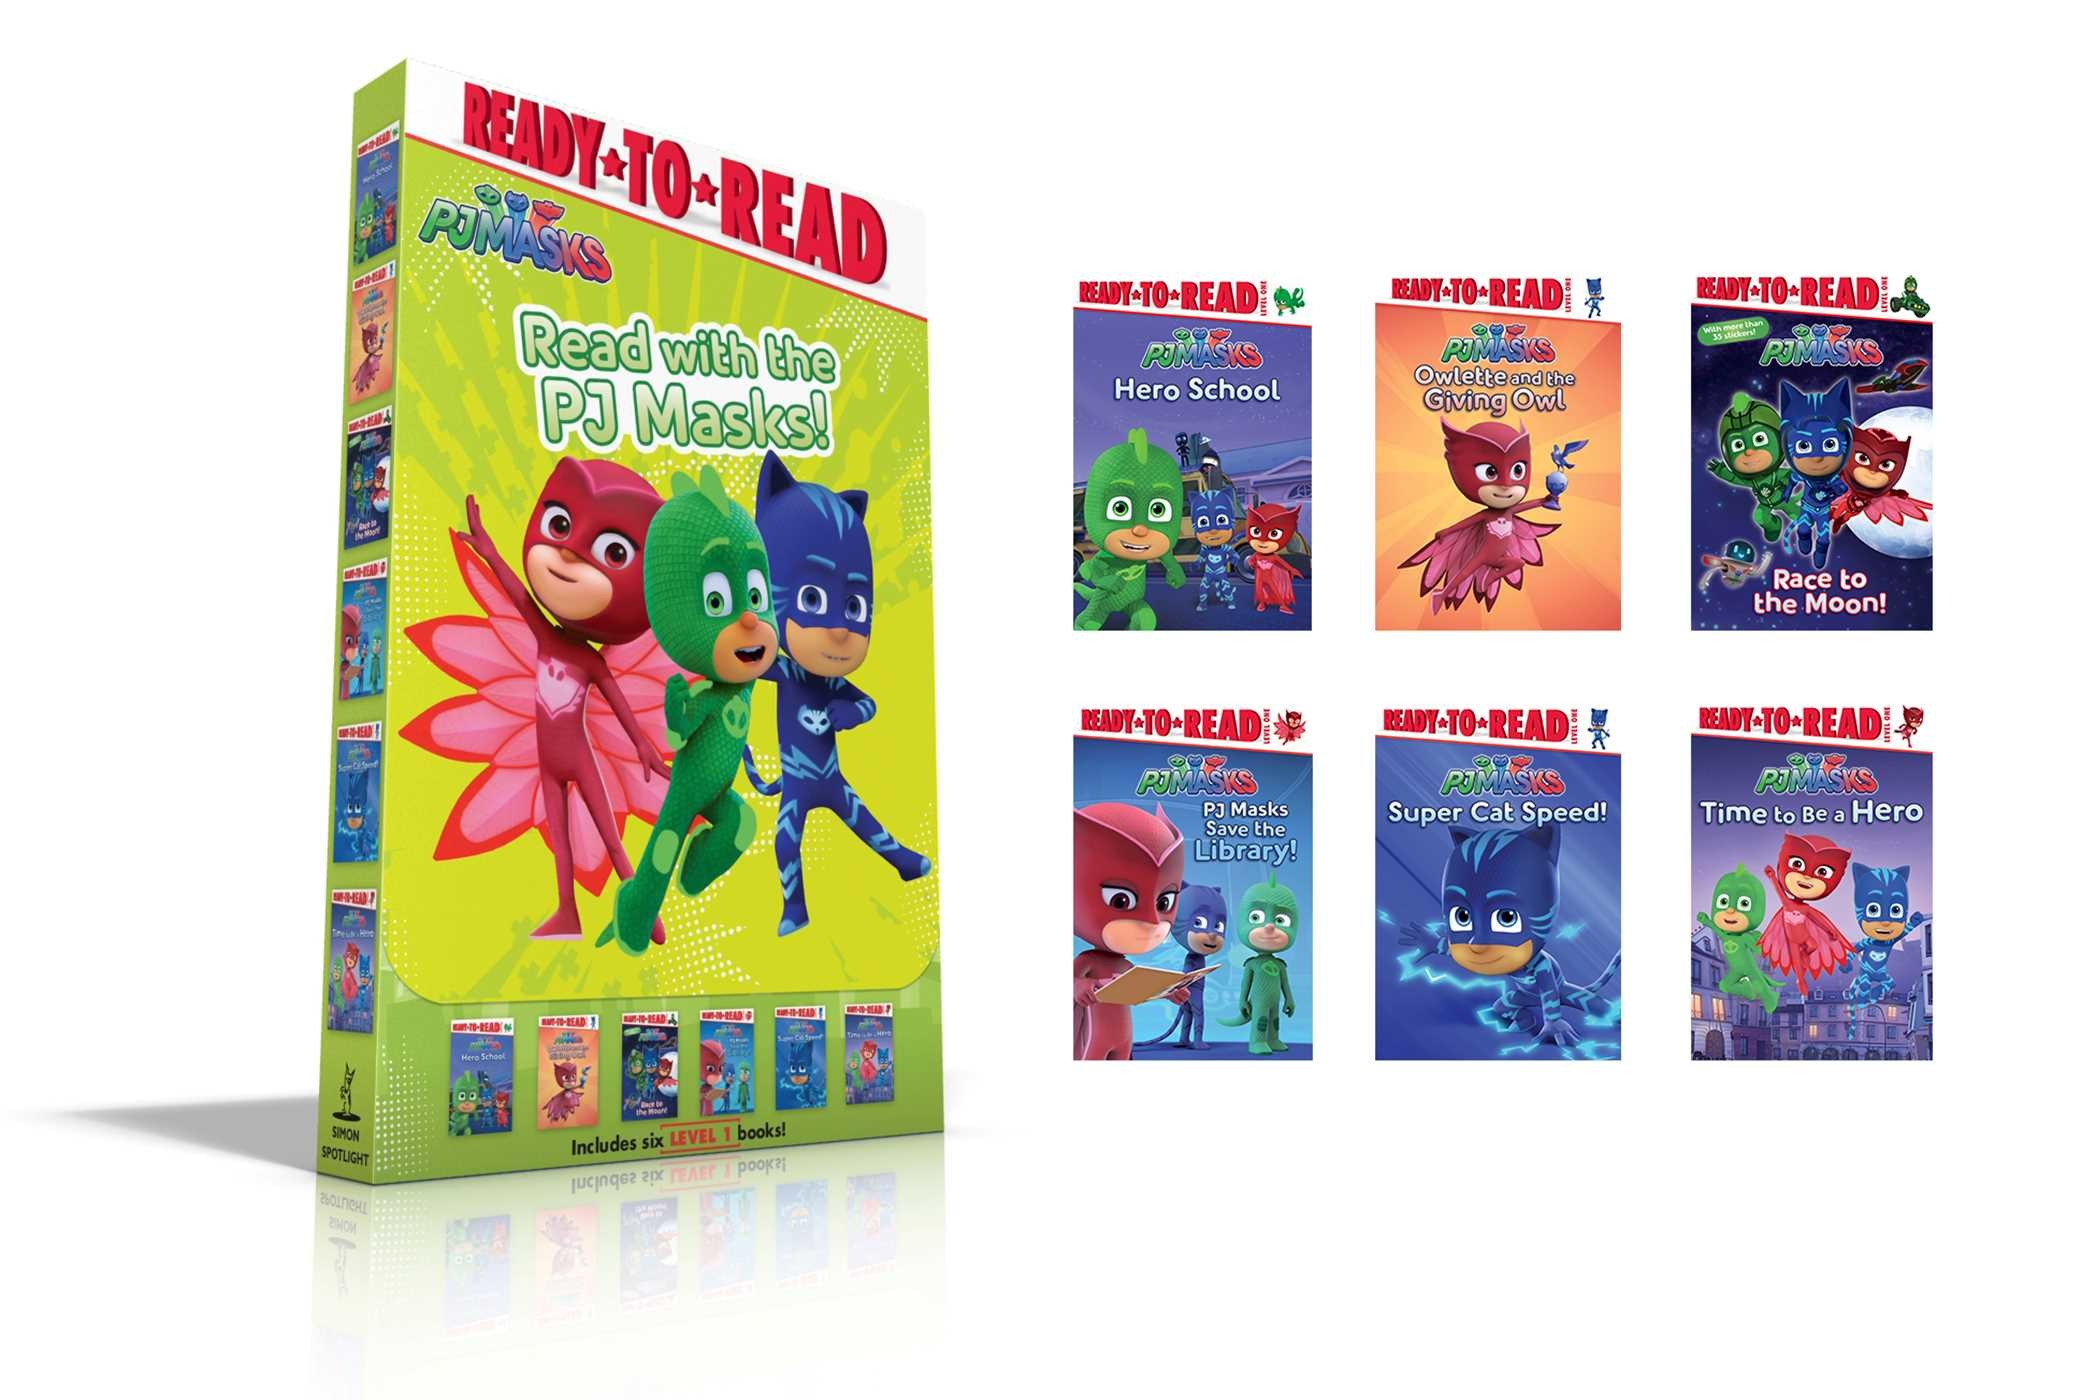 Read with the pj masks 9781534427099.in01